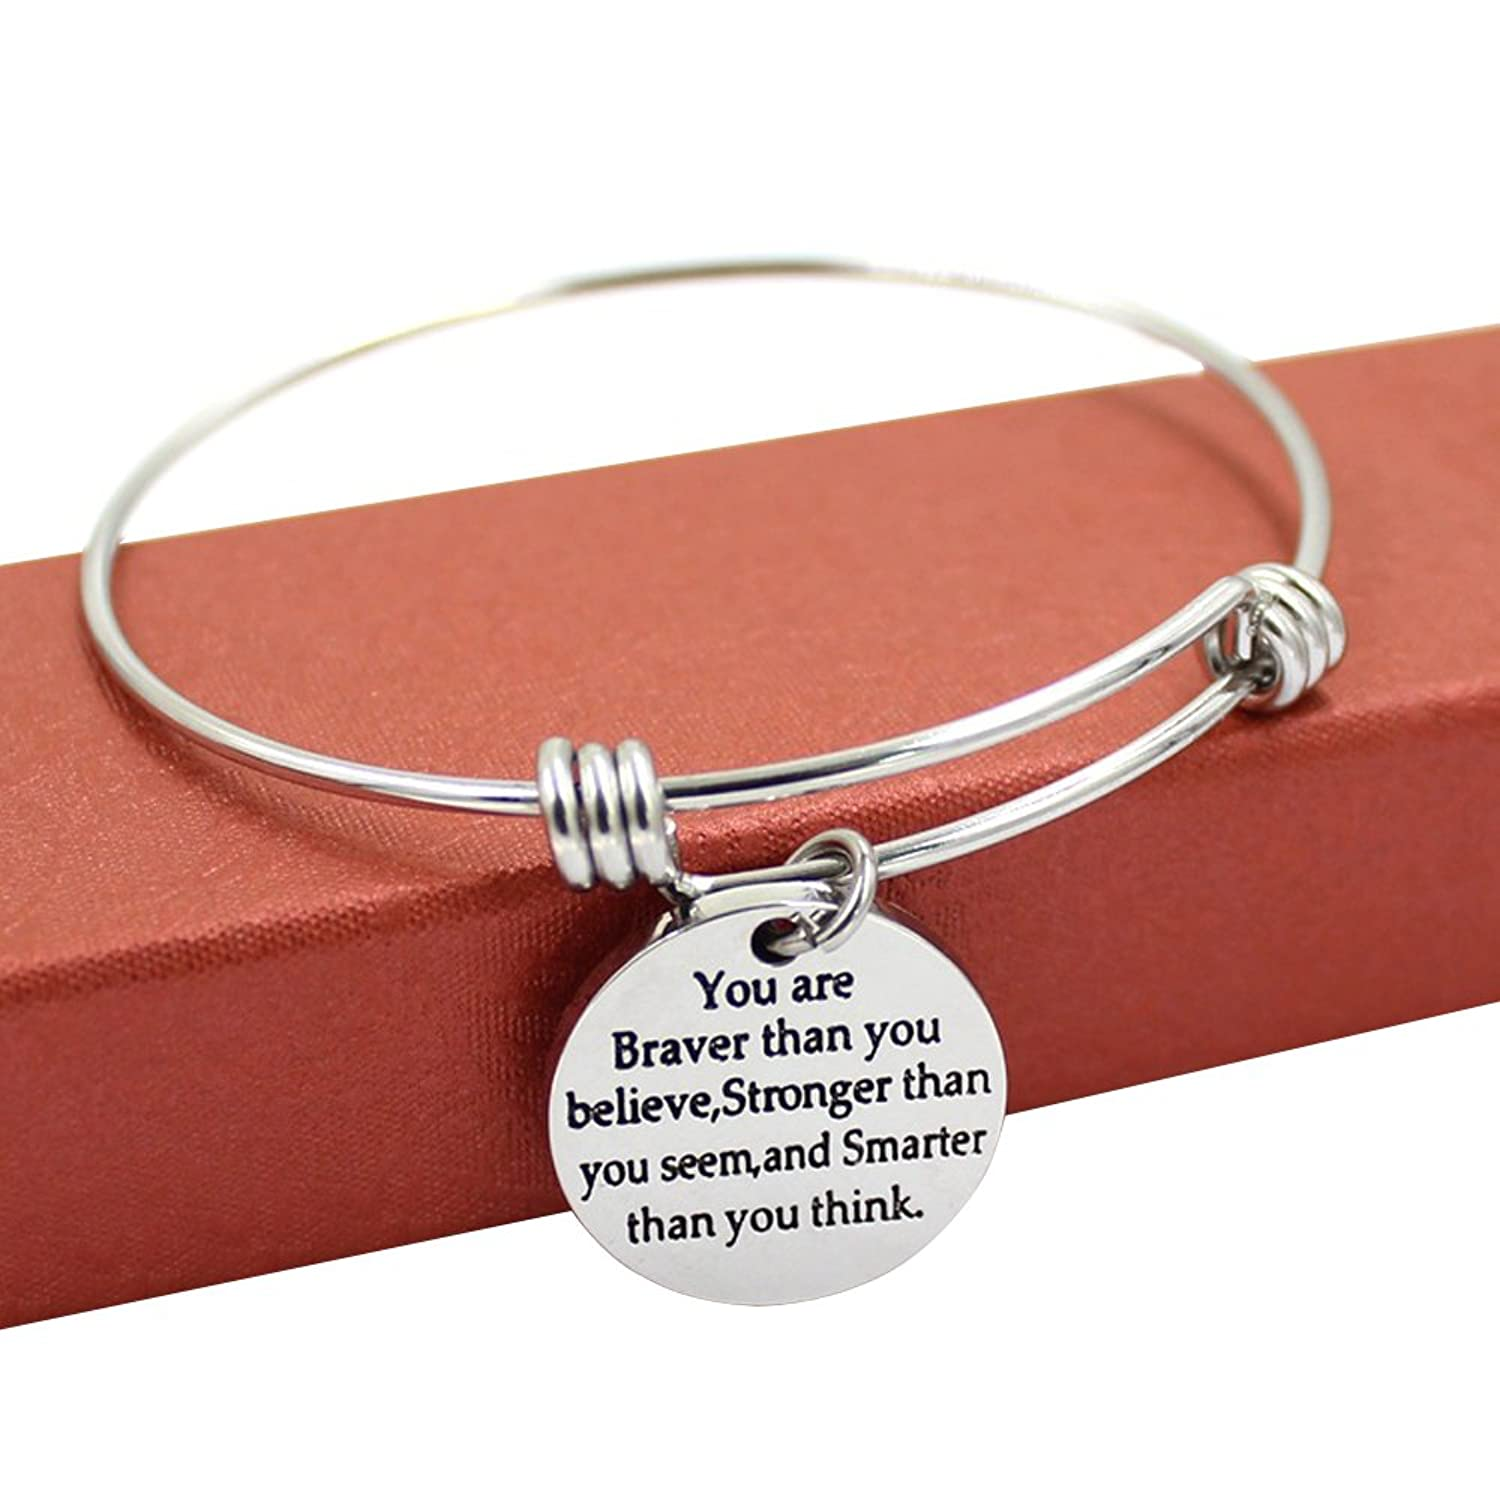 Expandable Bangle Bracelets You're Braver Stronger Smarter than you think Inspirational Gift for Women for Men Aaha2